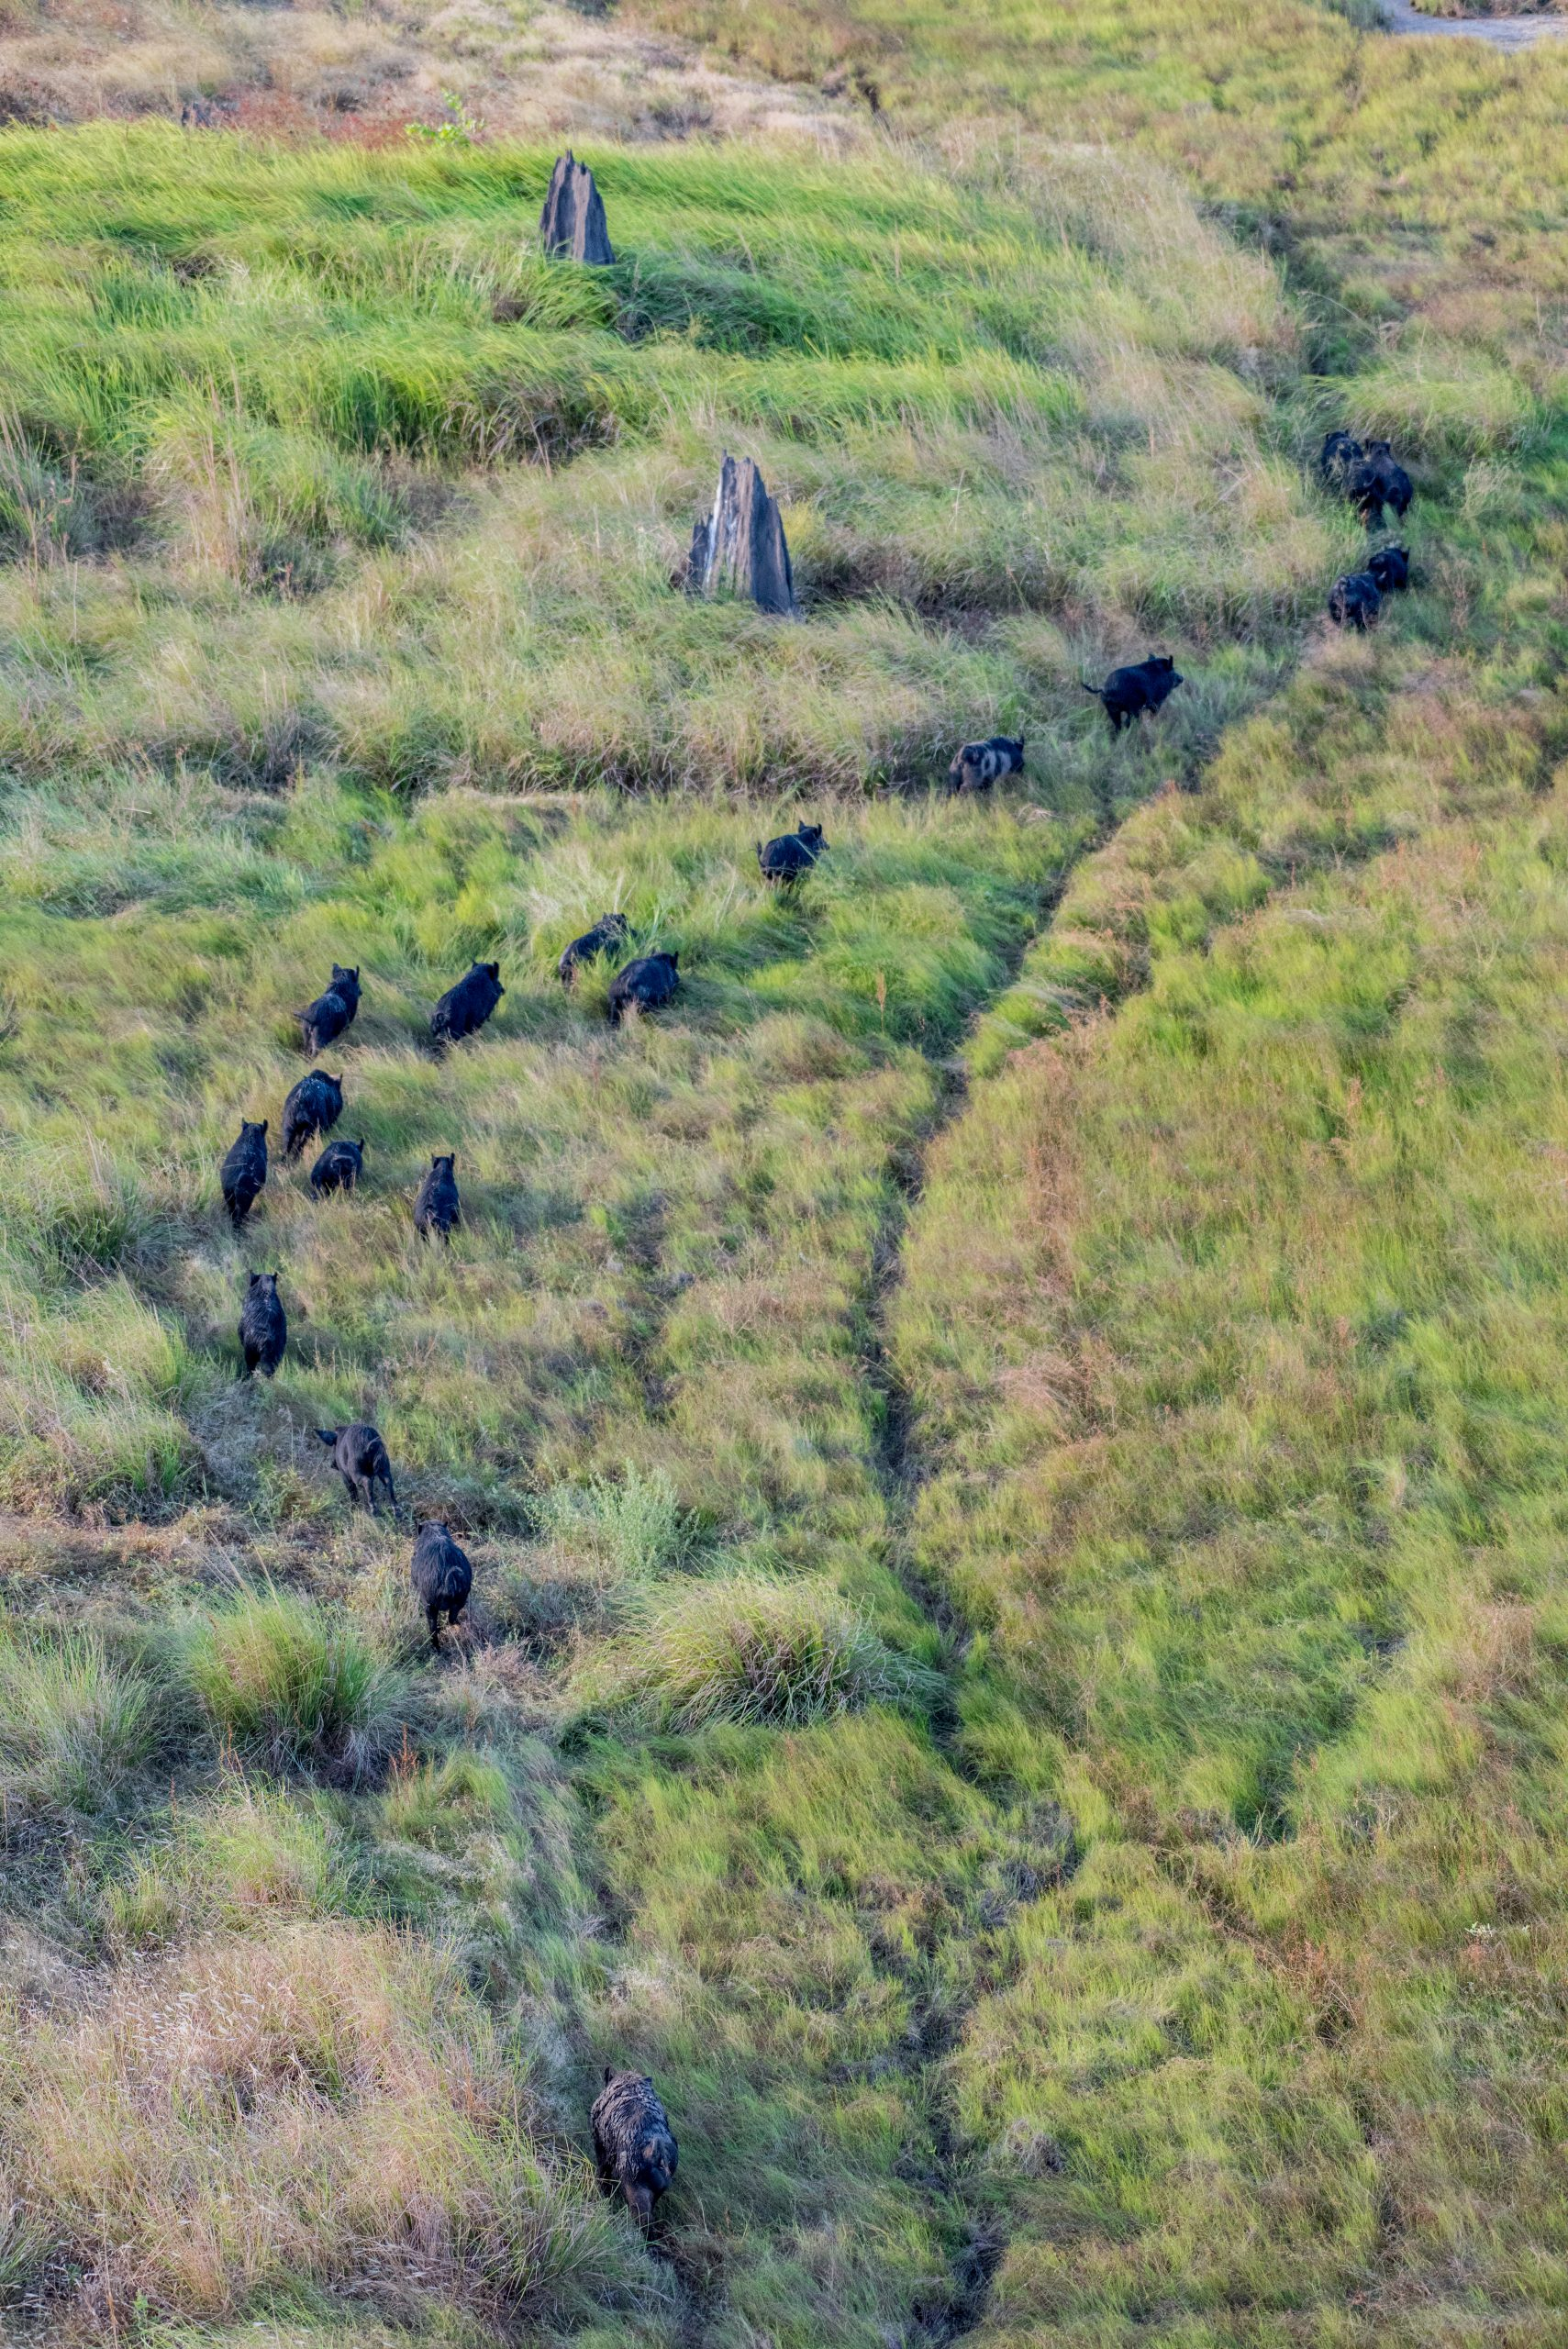 Images of feral pigs in grassland